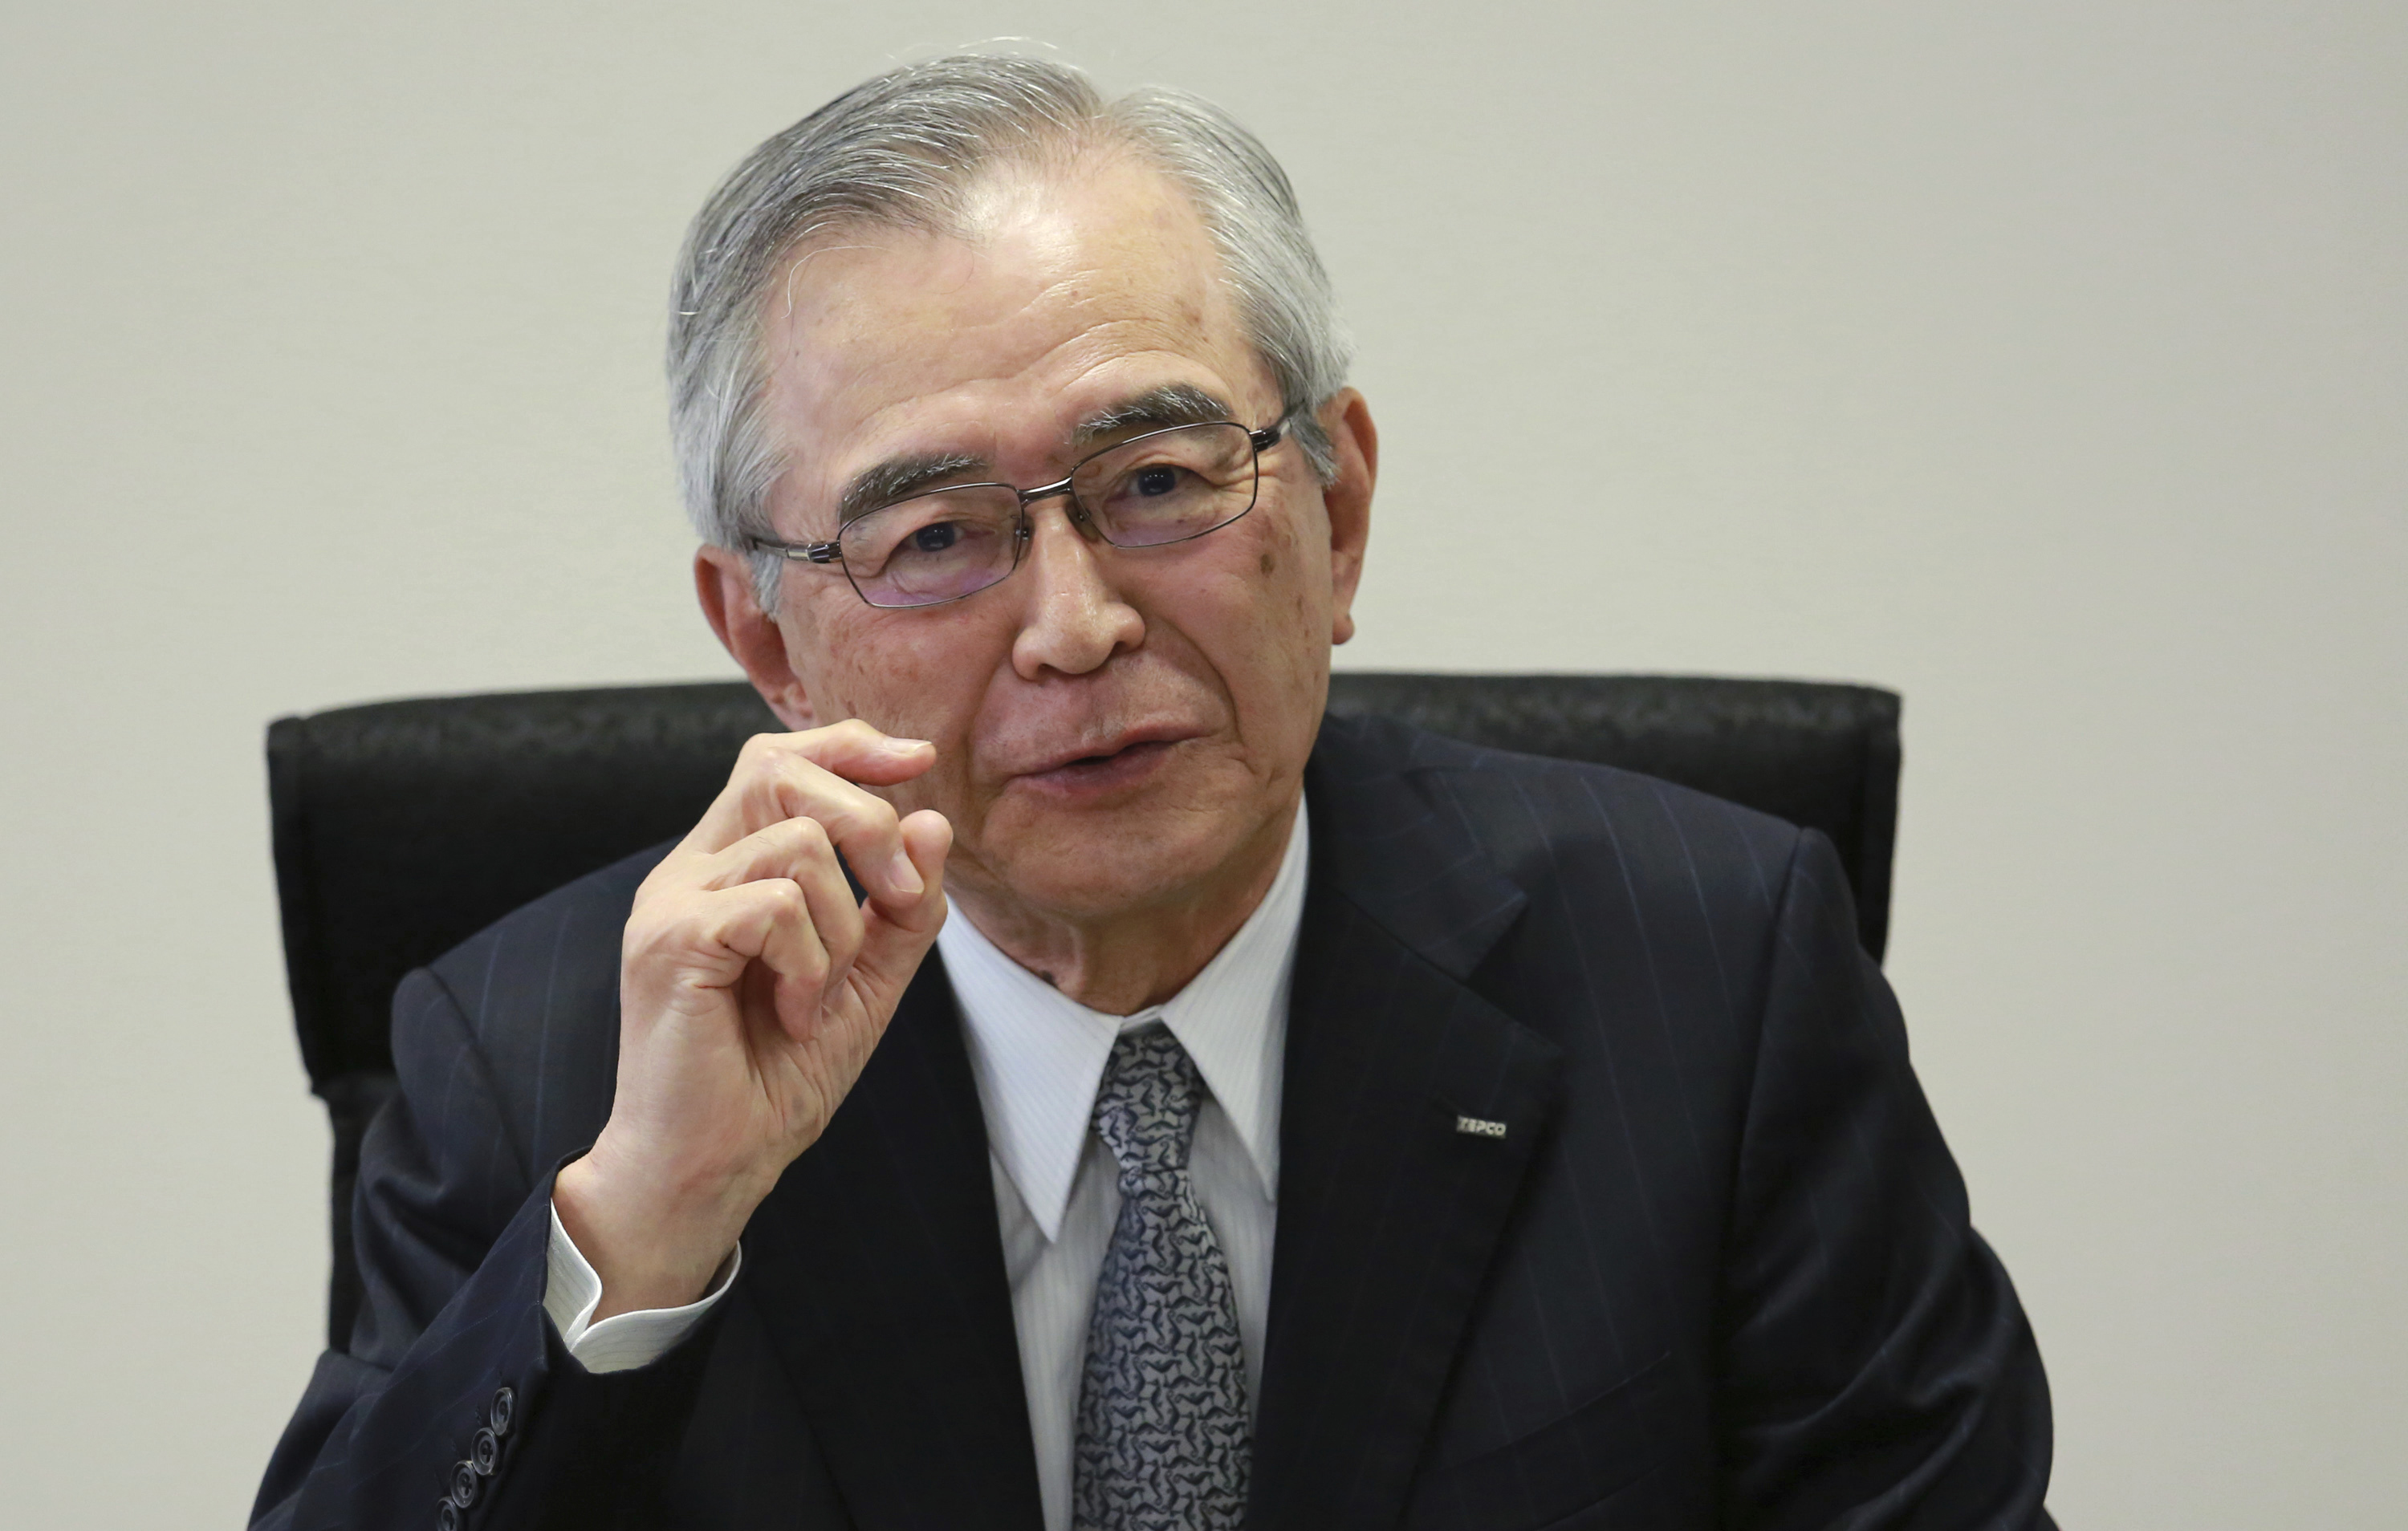 Japan Nuclear Tokyo Electric Power Co.'s new Chairman Takashi Kawamura speaks during an interview at the TEPCO headquarters in Tokyo on Thursday, July 13, 2017. Kawamura said the utility needs to stop dragging its feet on plans to dump massive amounts of treated but contaminated water into the sea and make more money if it's ever going to succeed in cleaning up the mess left by meltdowns more than six years ago at the tsunami-hit Fukushima nuclear power plant. (AP Photo/Eugene Hoshiko)